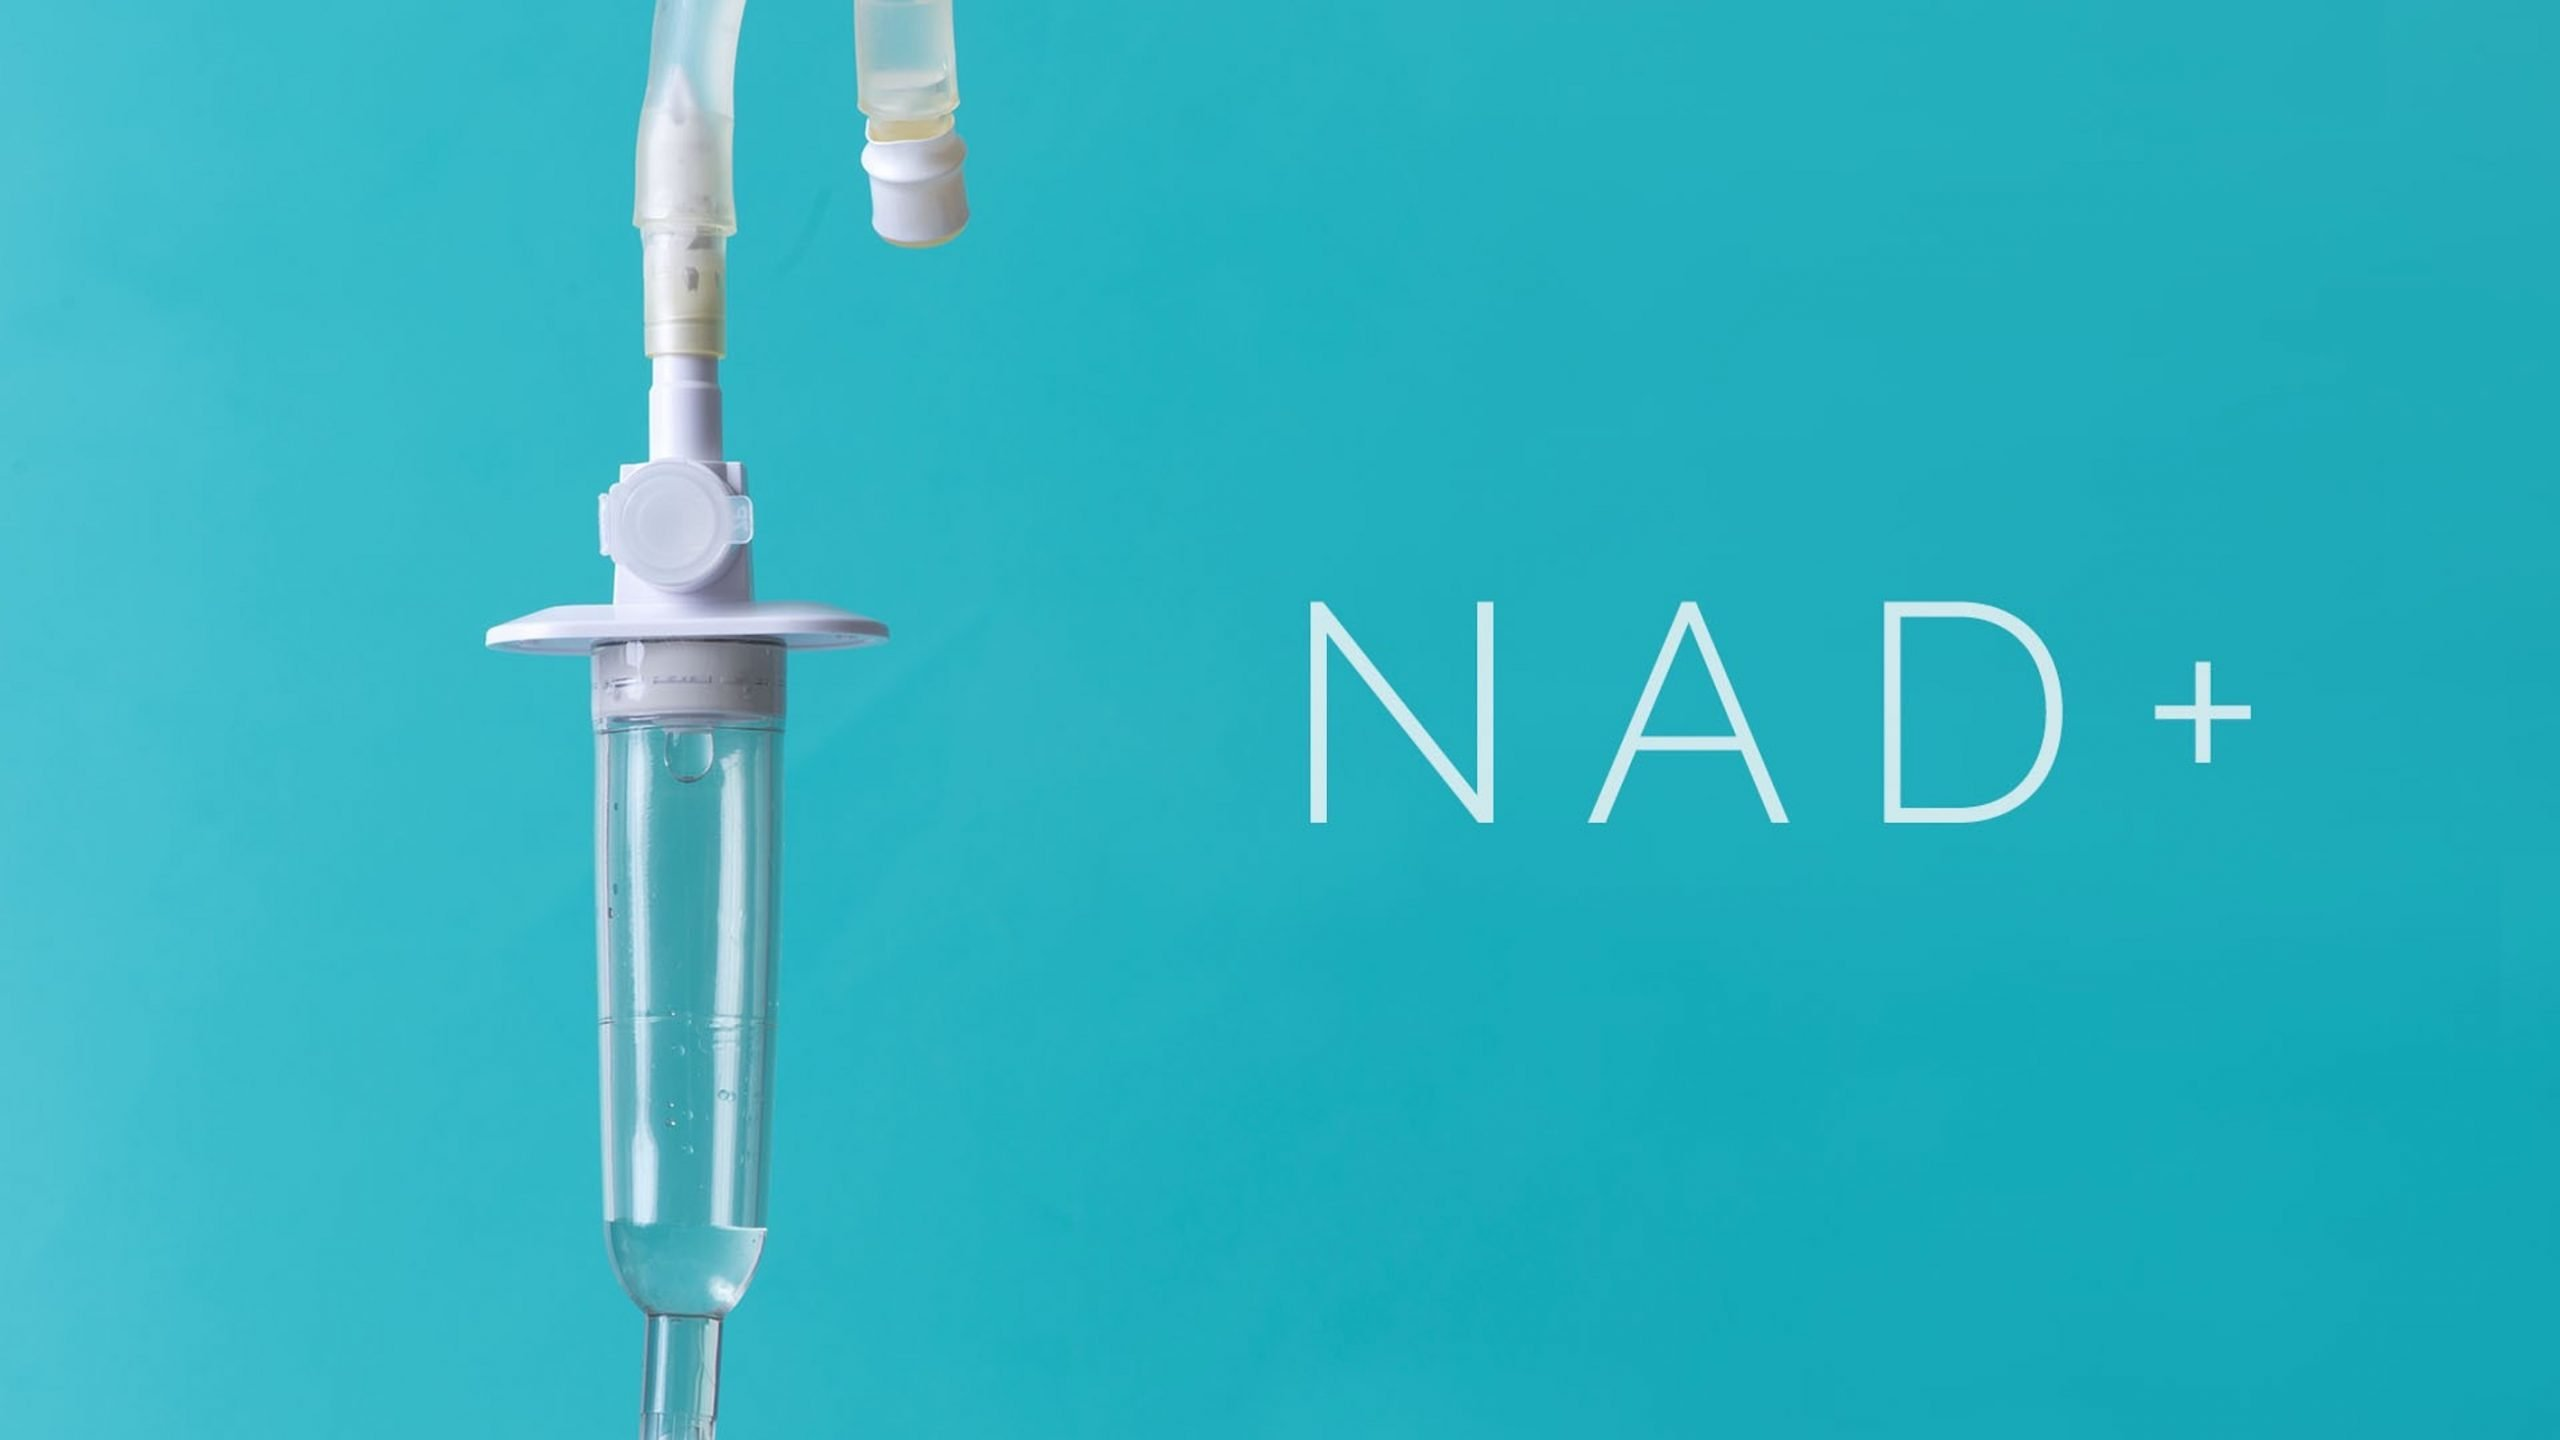 NAD IV Therapy for Alternative Cancer Treatment in Scottsadale, Arizona